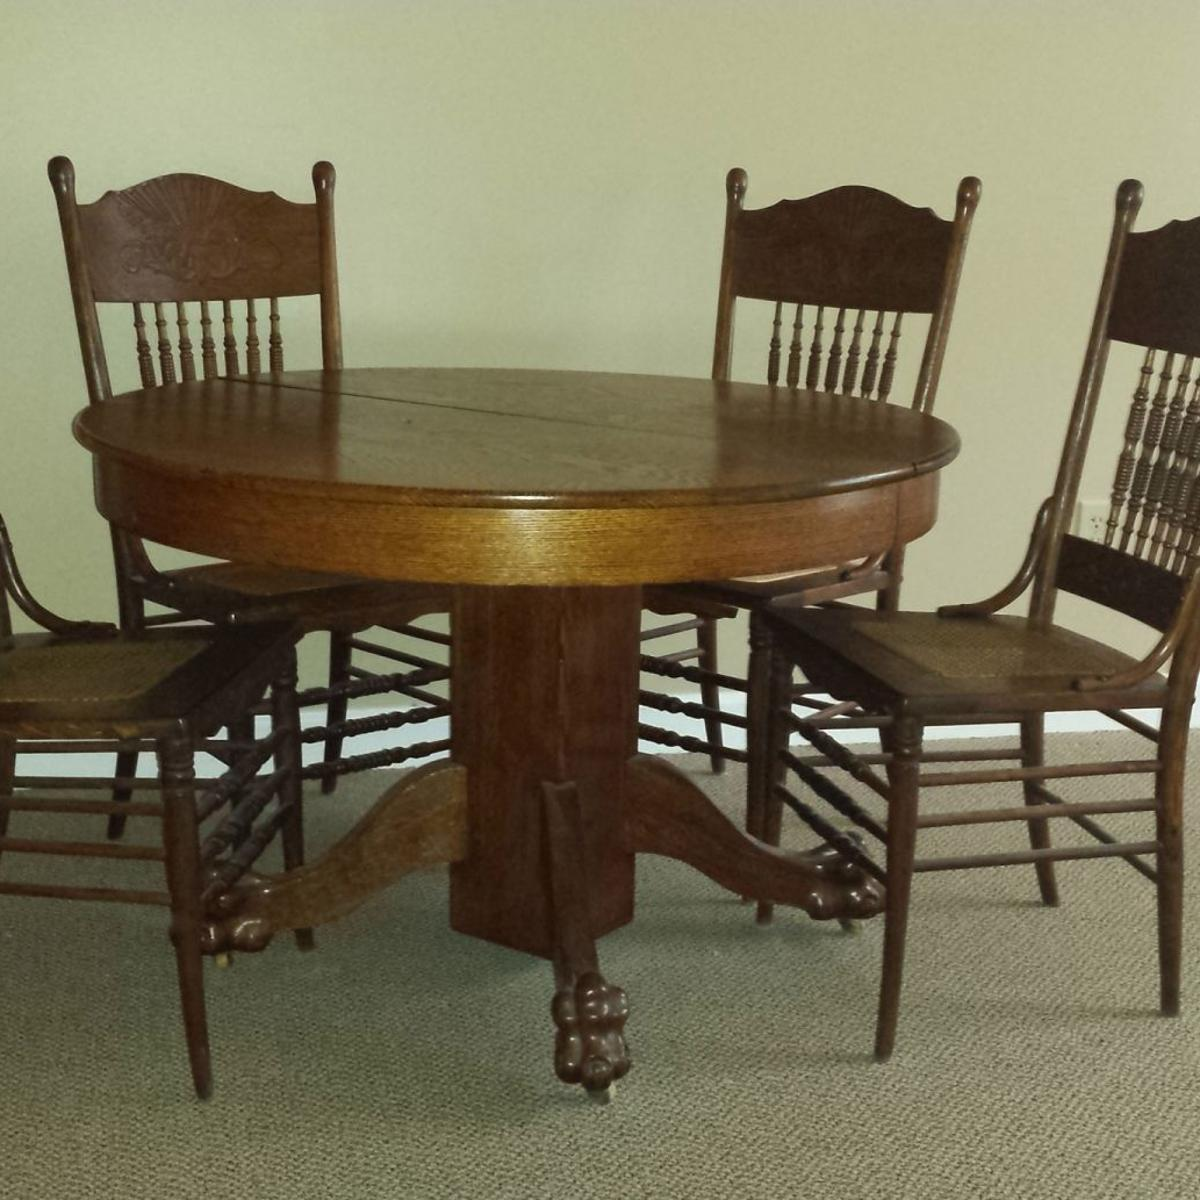 Antiques & Collectibles: Oak table and chairs are interesting